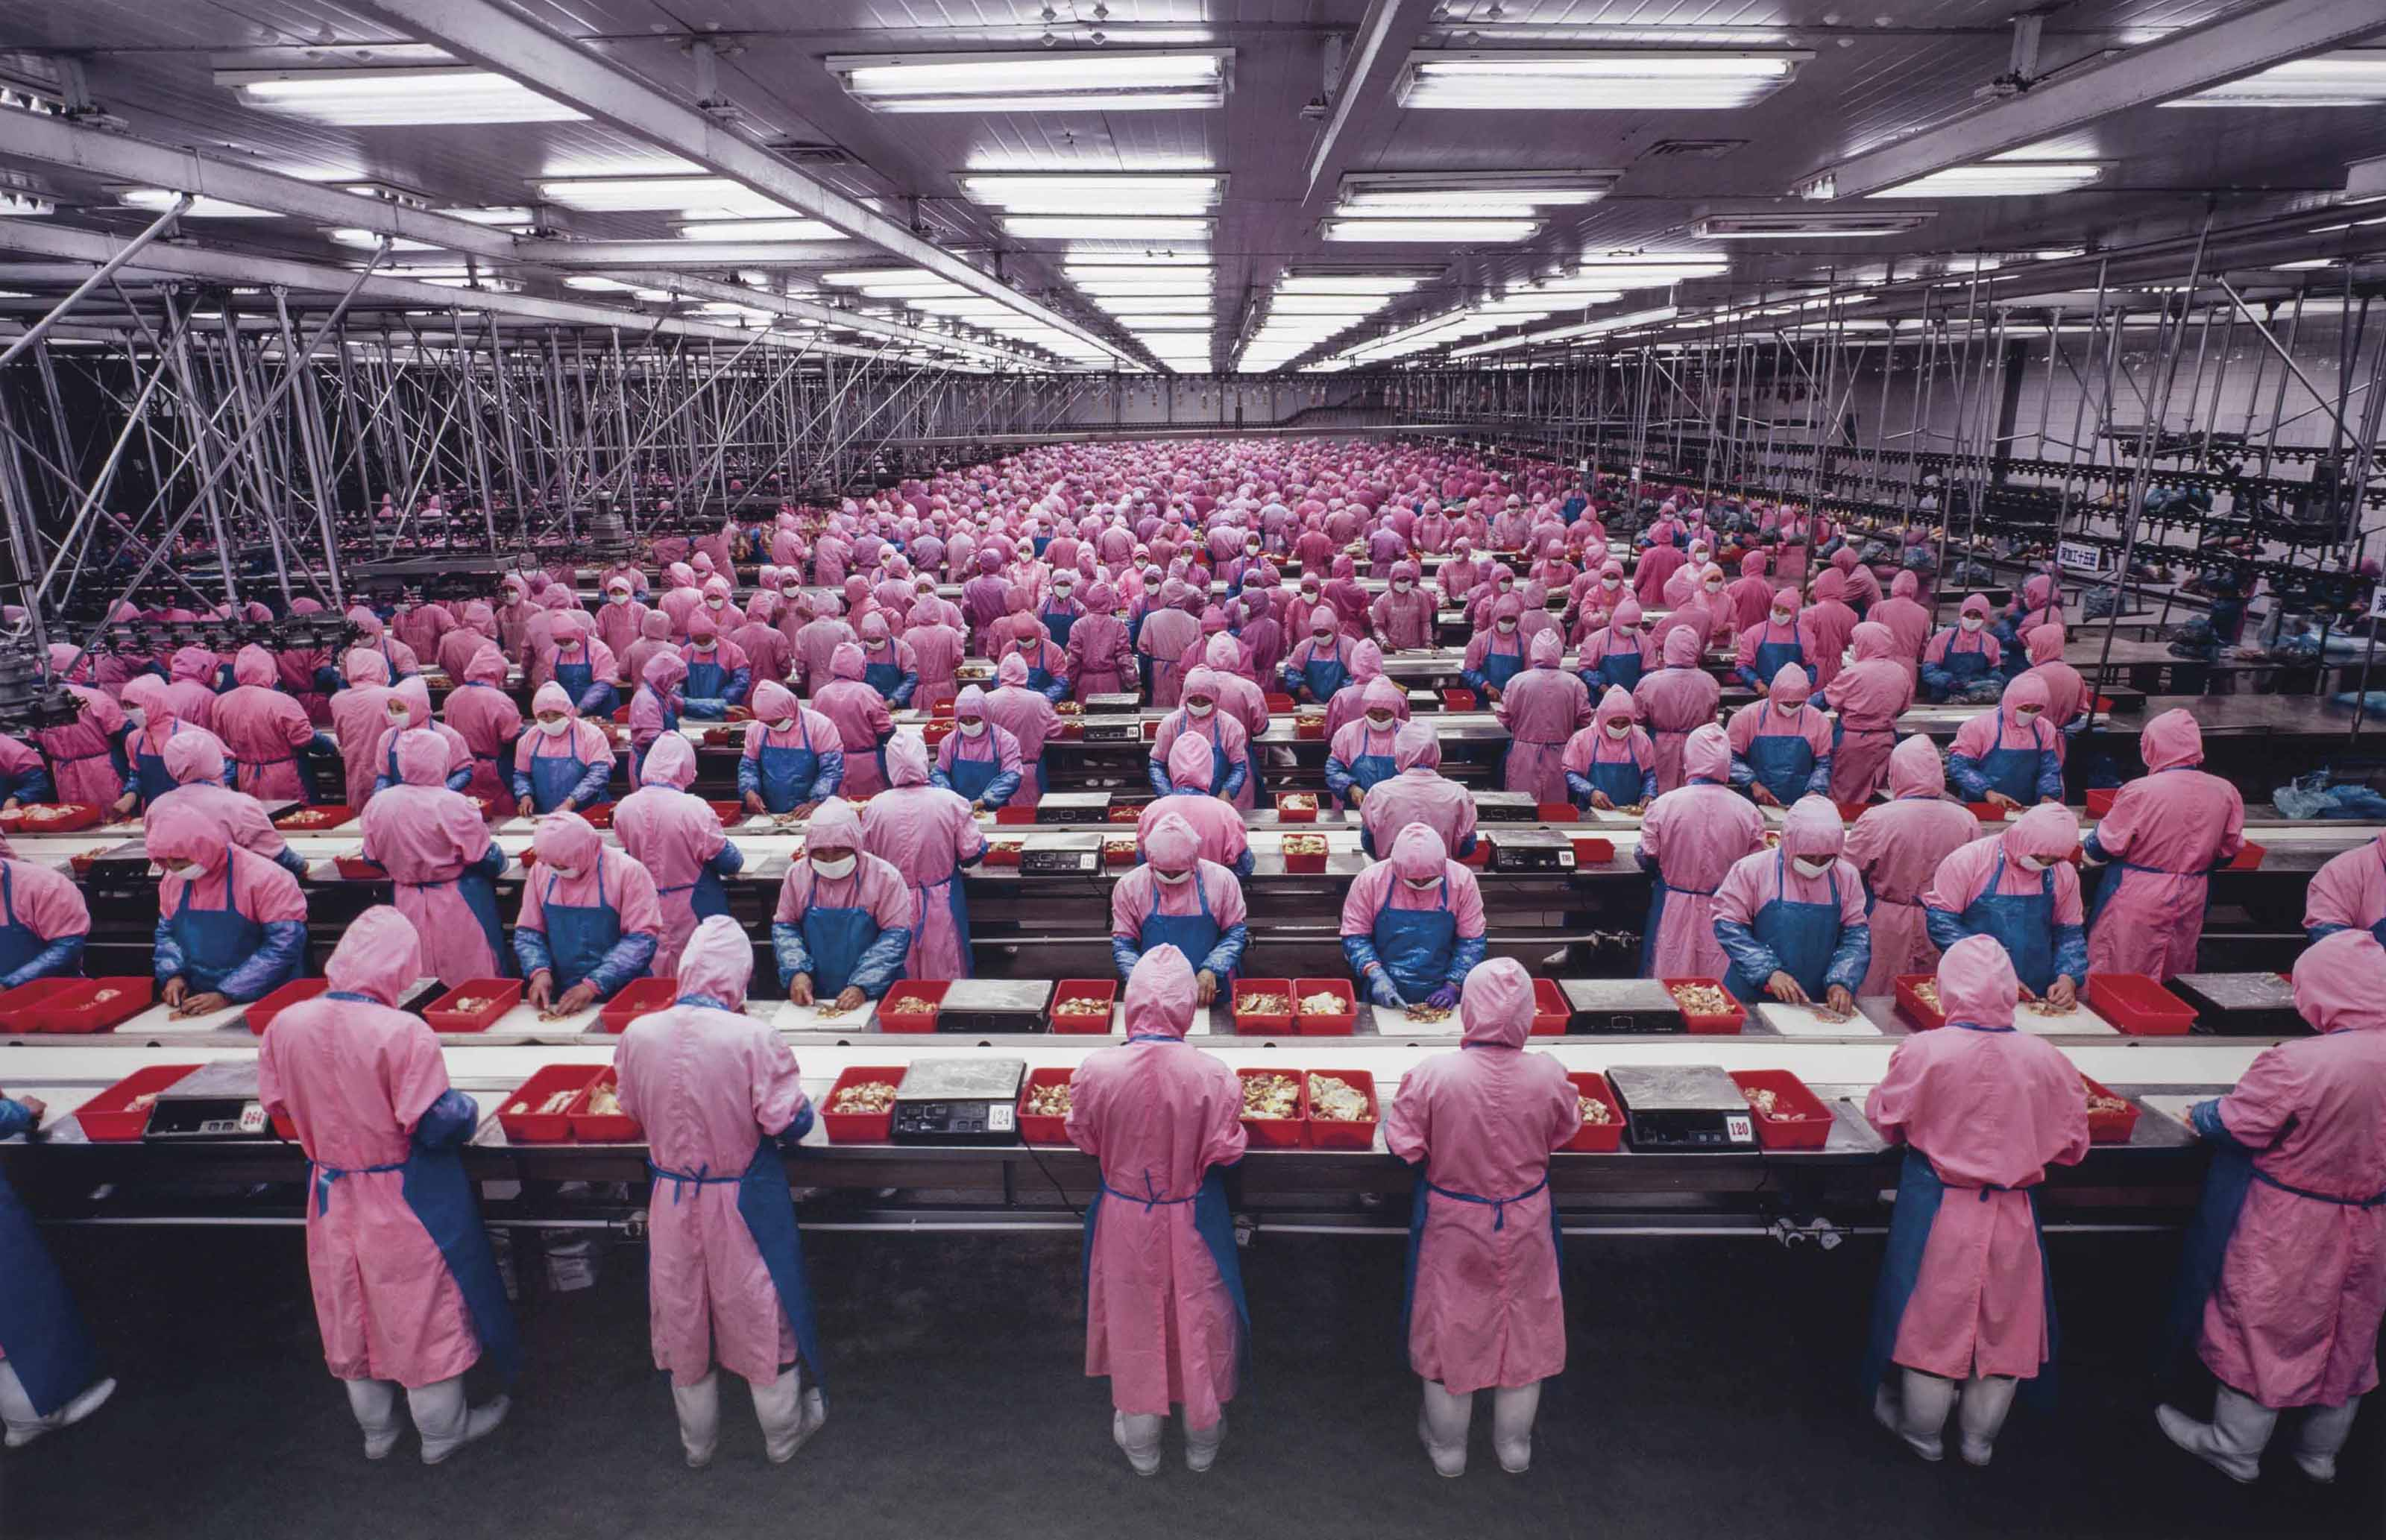 Manufacturing #17, Deda Chicken Processing Plant, Dehui City, Jilin Province, China, 2005